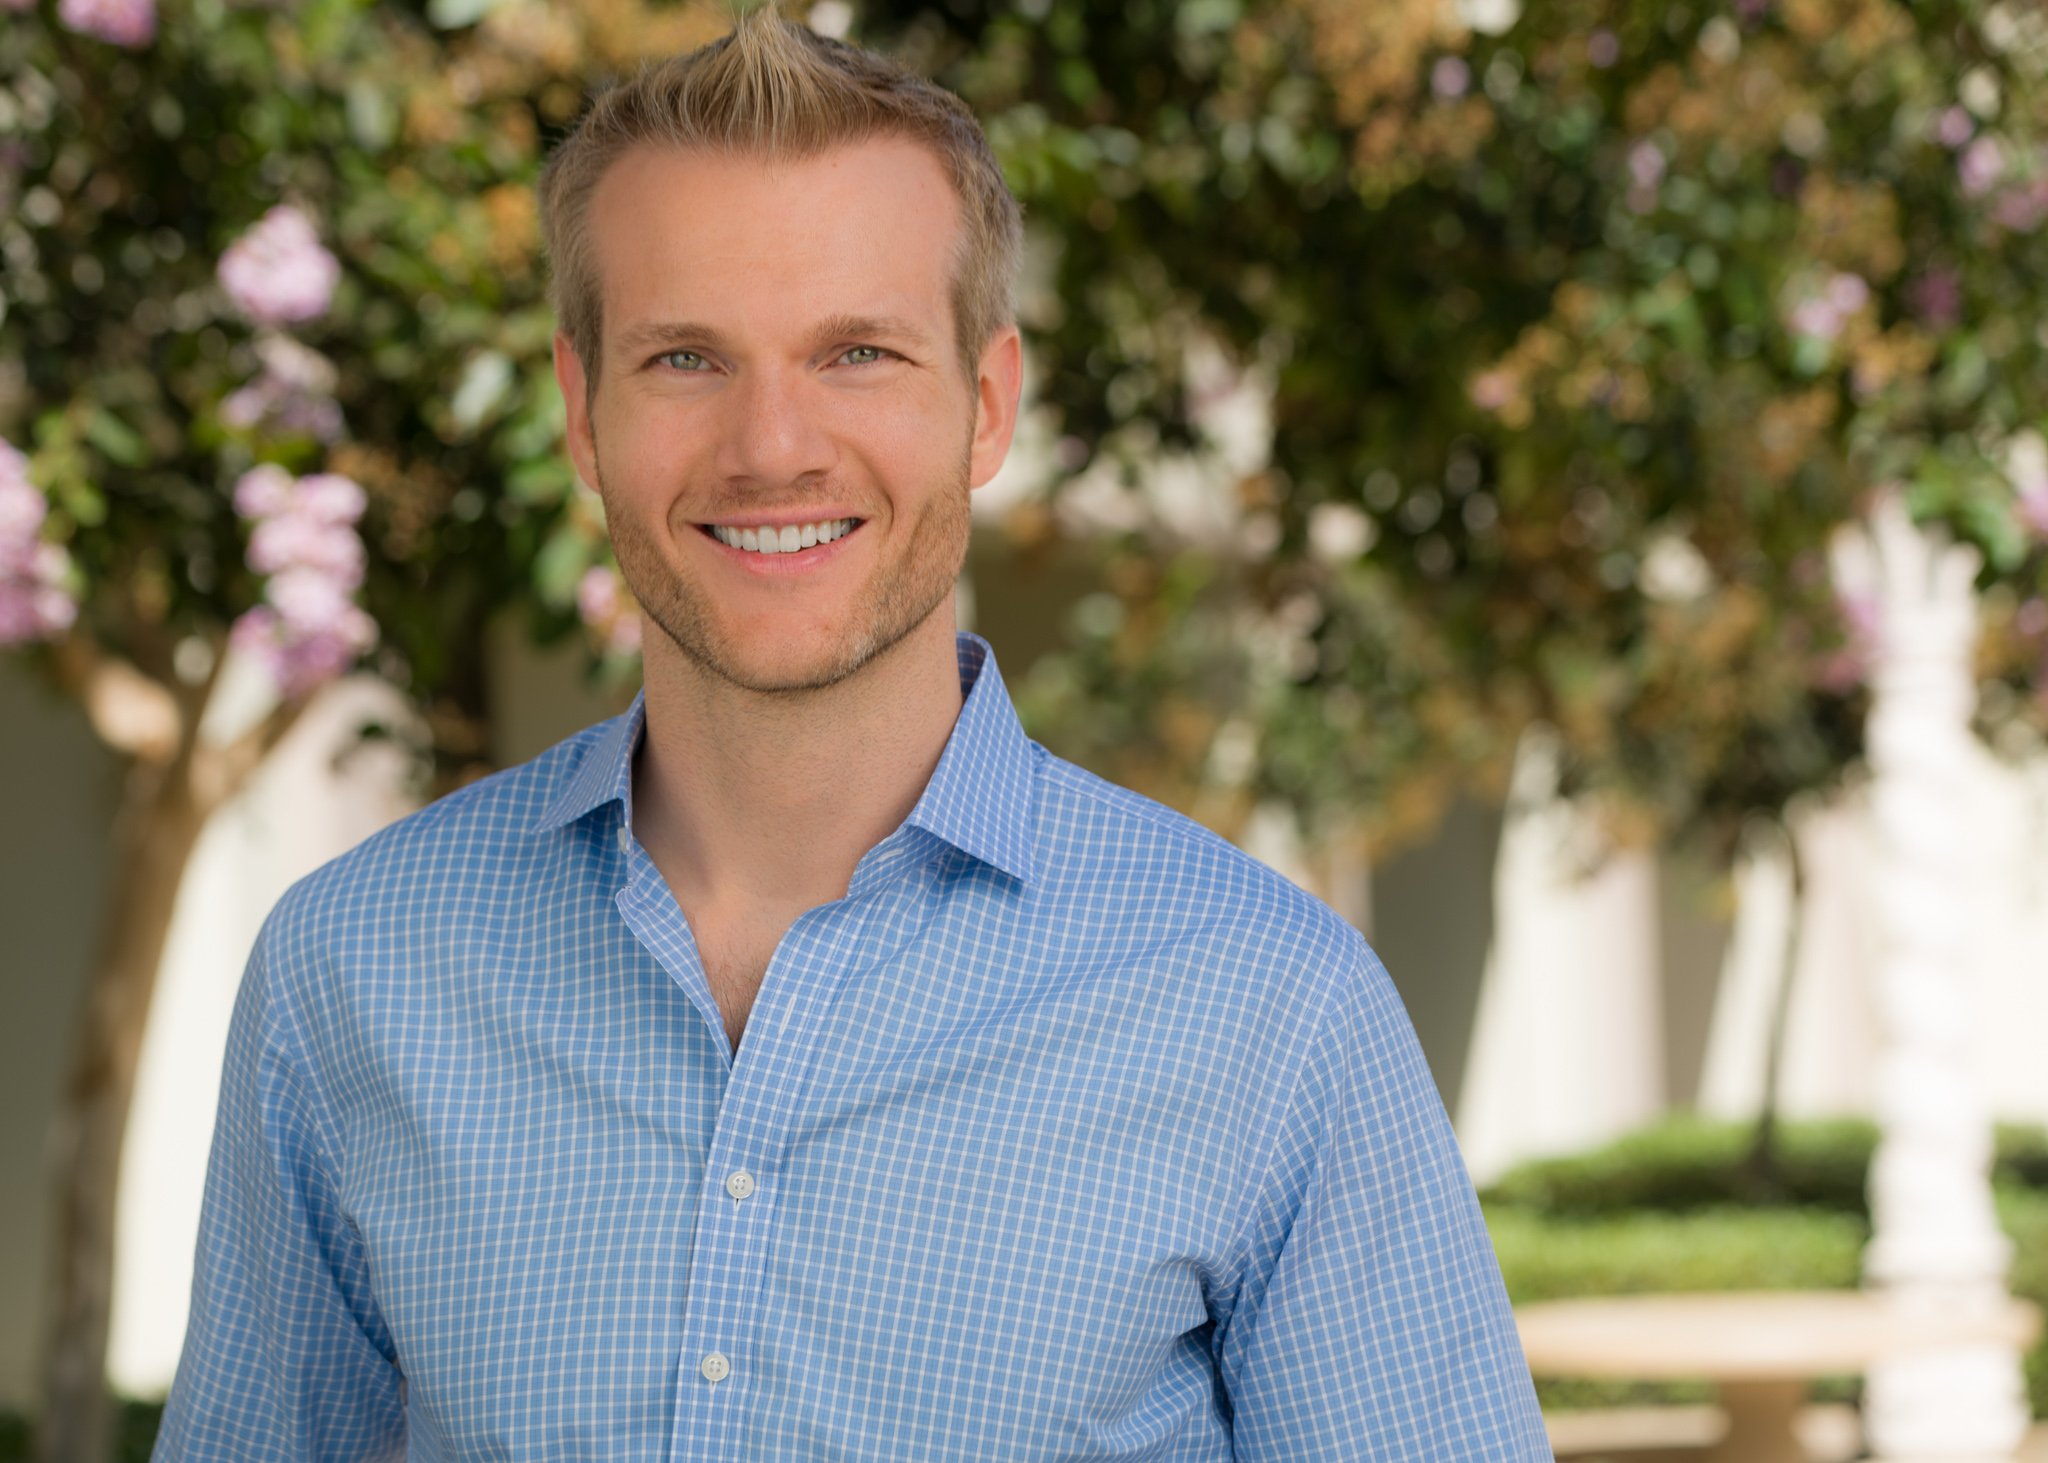 Colin Campbell, University of San Diego School of Business Assistant Professor of Marketing